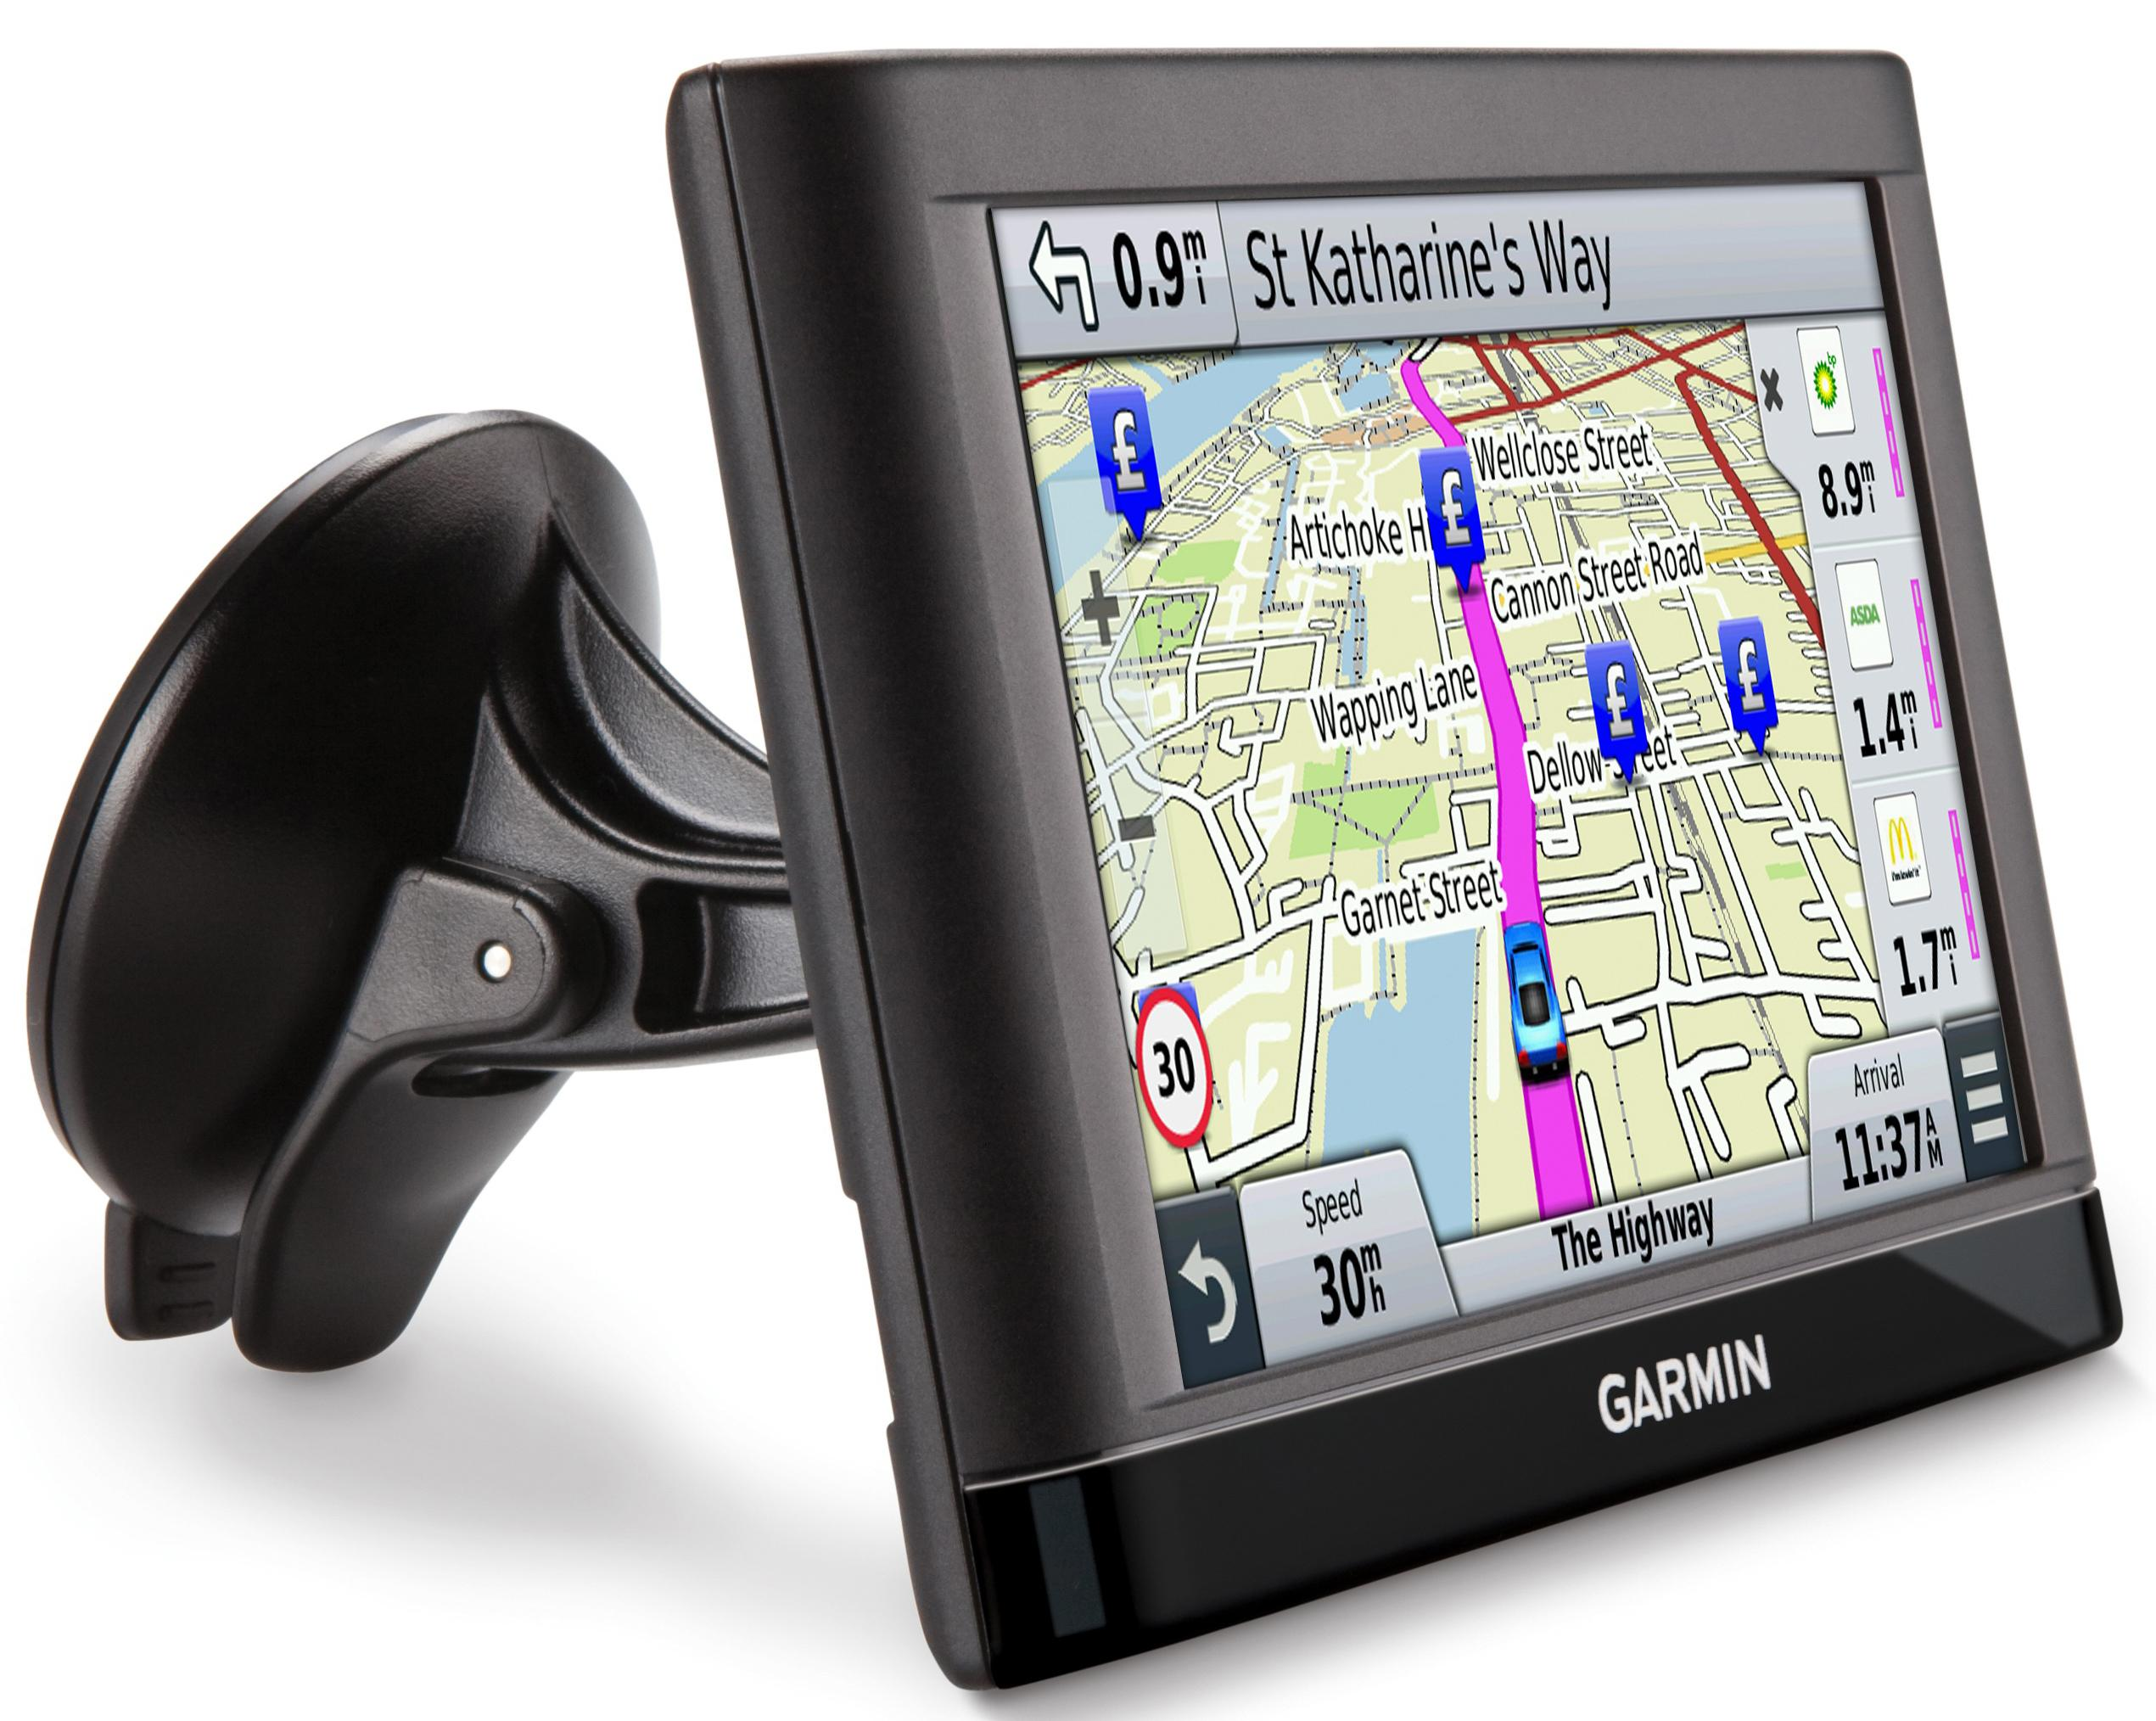 garmin nuvi 55lm 5 gps sat nav navigation system. Black Bedroom Furniture Sets. Home Design Ideas